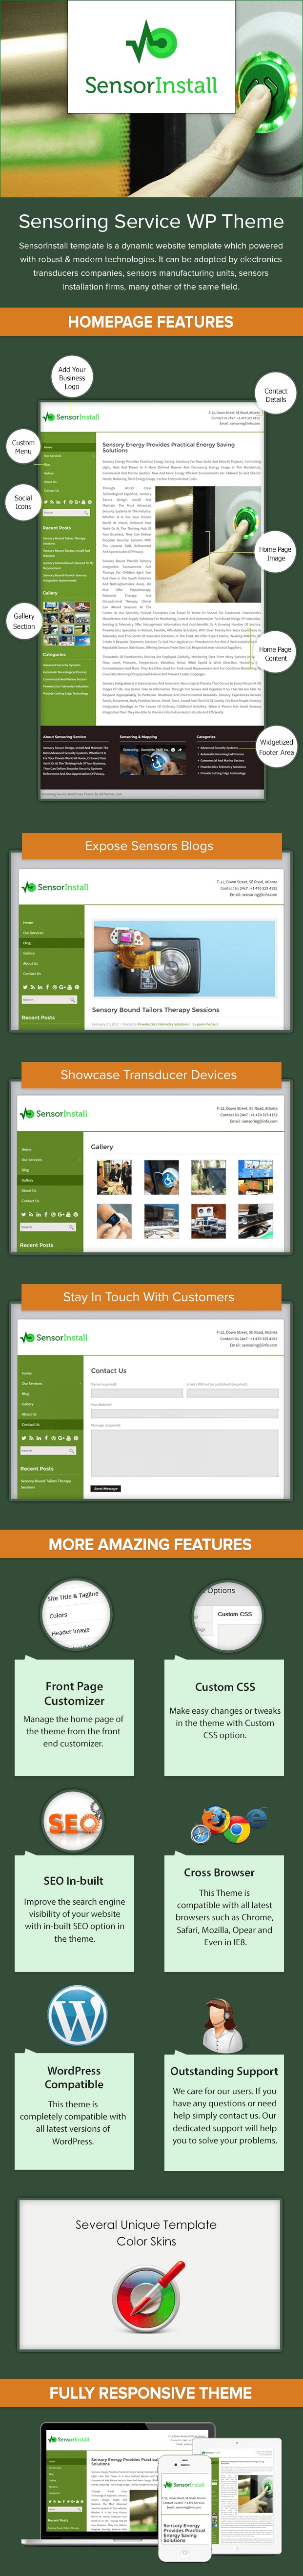 Sensoring Service WordPress Theme Sales